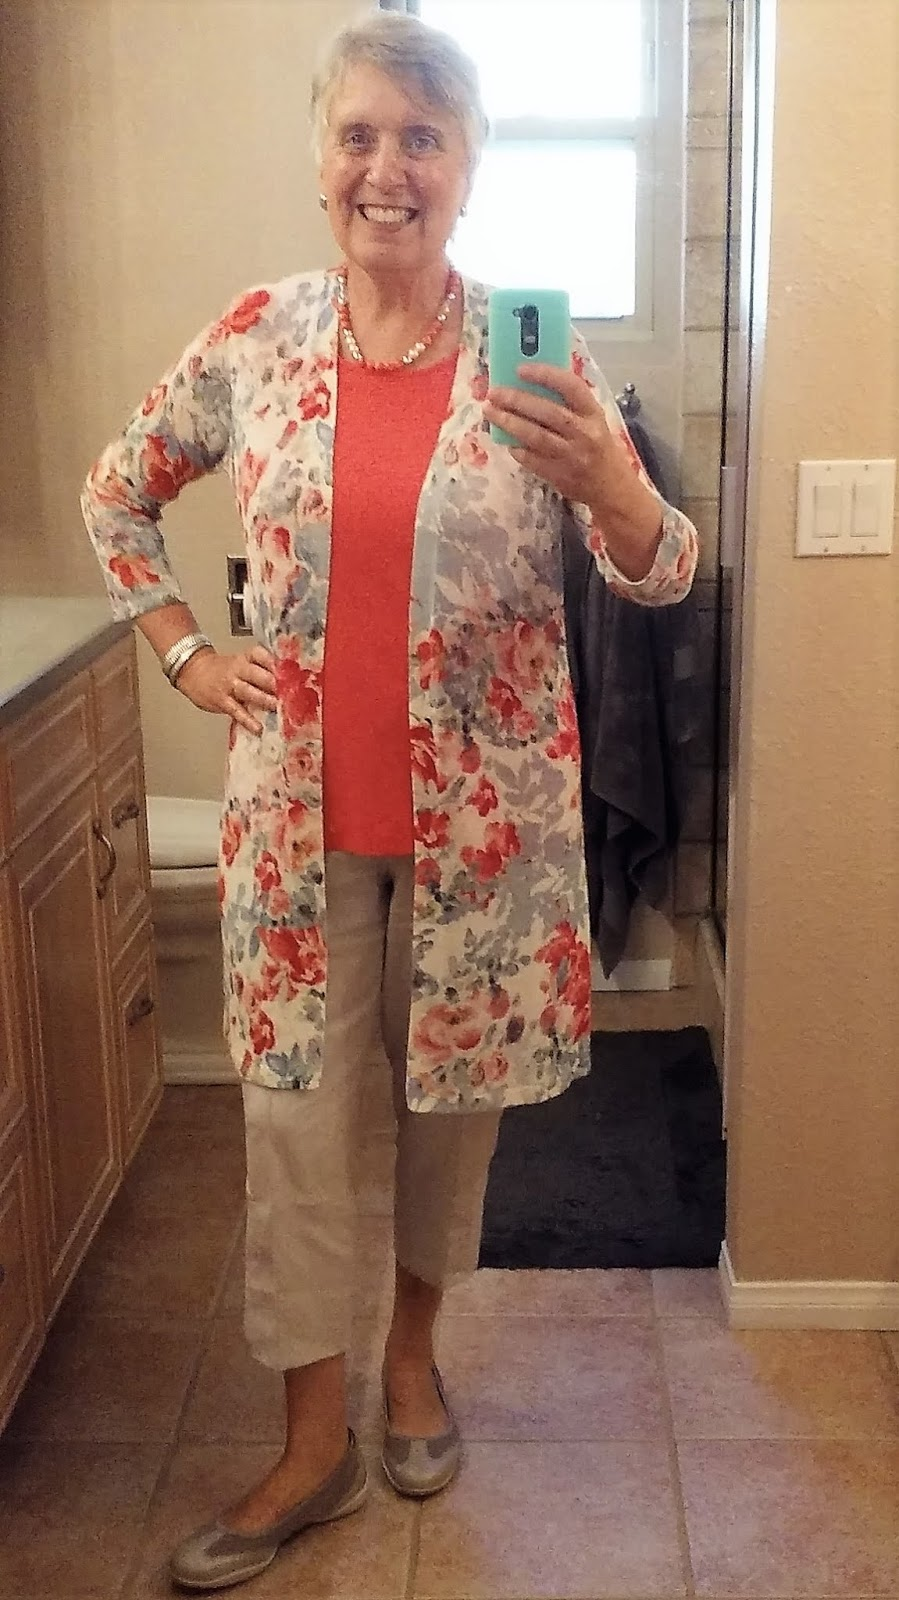 1a584ab75c5 Coral is a signature color for me and it makes me happy. Completely new  outfit on the left was bought with my son s September S. California wedding  weekend ...